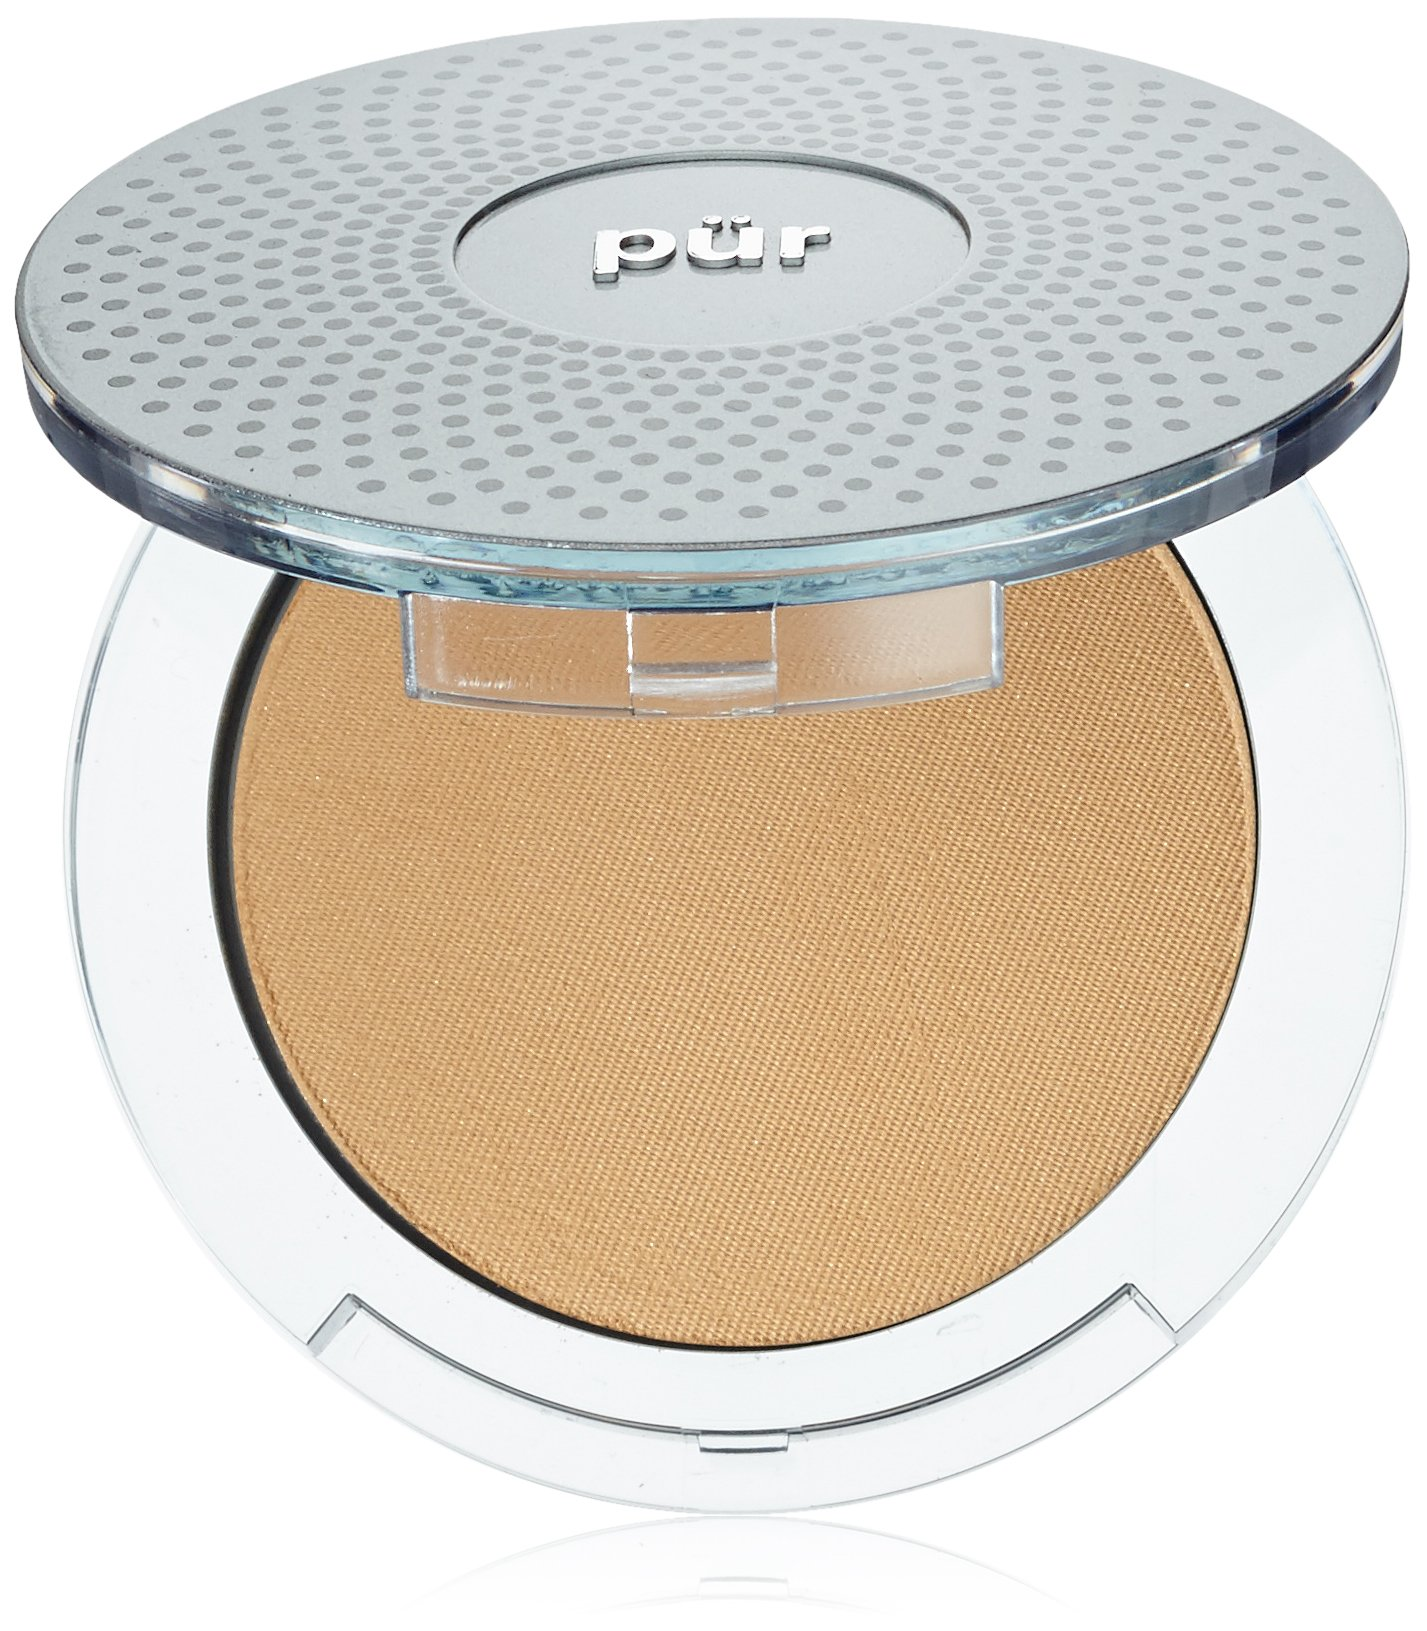 Pur Minerals 4-In-1 Pressed Mineral Makeup, Light Tan, 0.28 Ounce